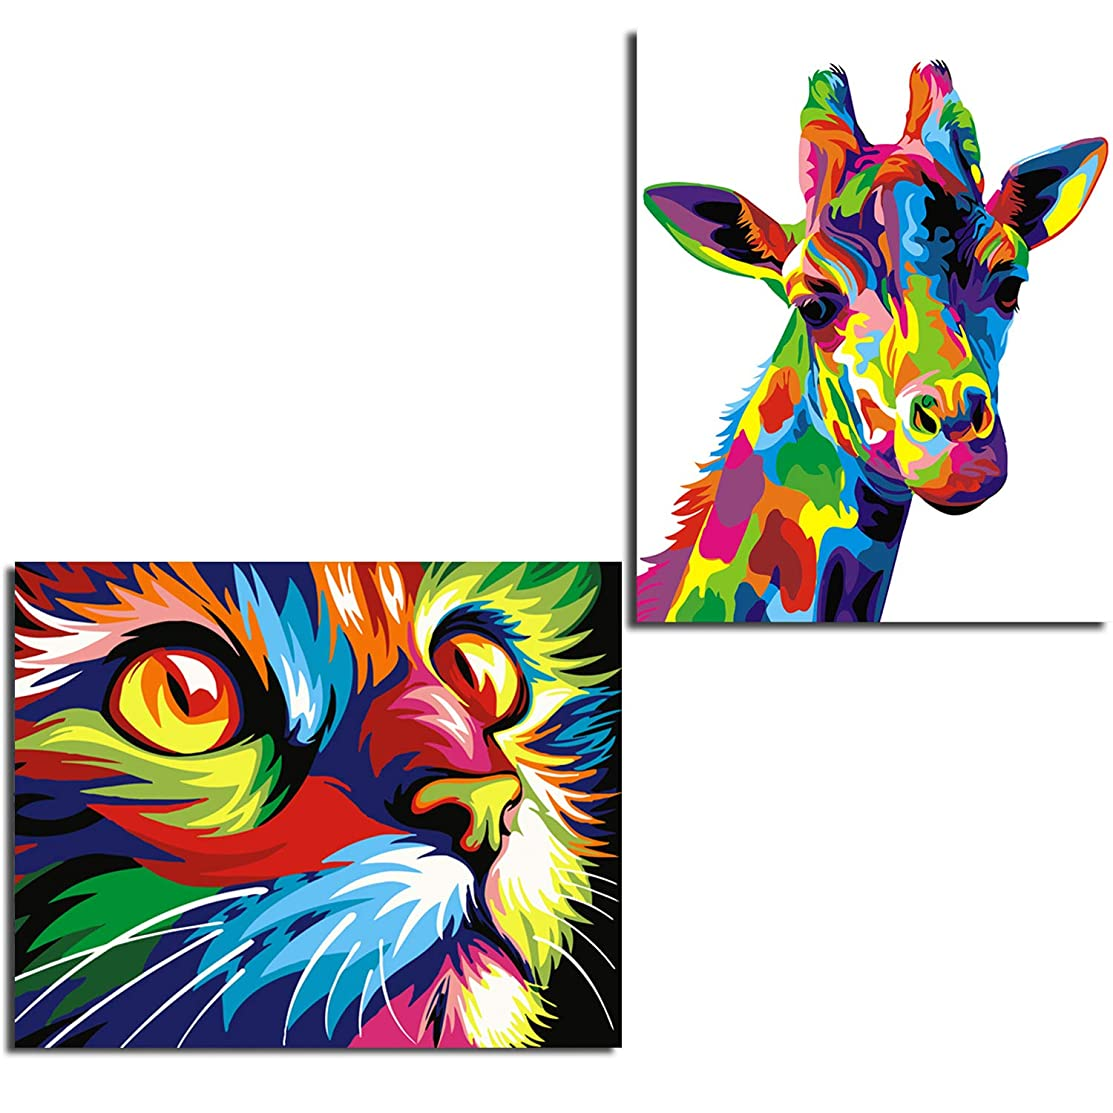 2 Pack Frameless DIY Oil Painting Paint by Number Colorful Giraffe and Cat Wall Art Picture for Kids and Adults,16 x 20 Inches